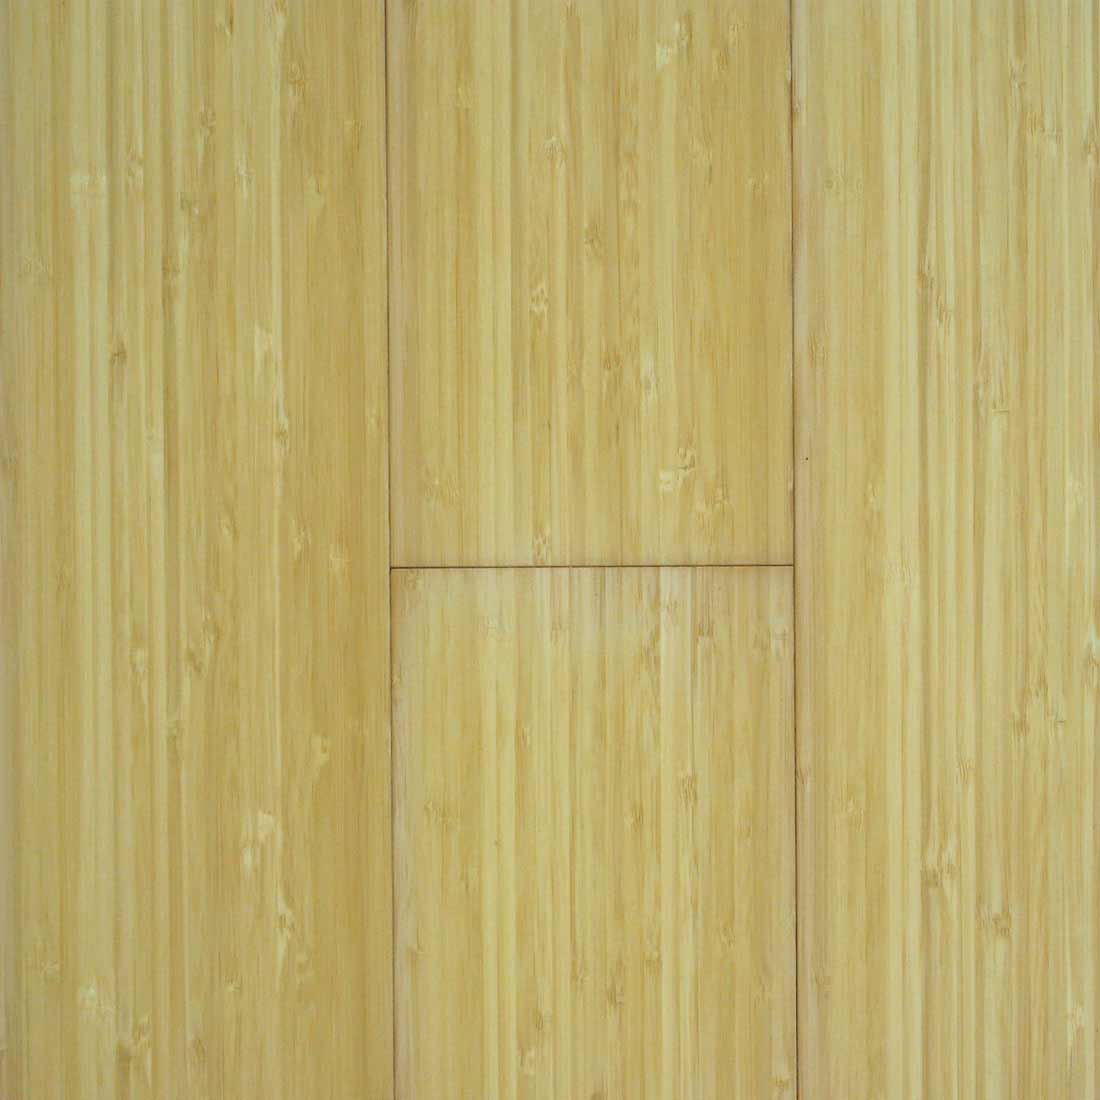 Natural vertical engineered hawa bamboo flooring custom for Engineered bamboo flooring